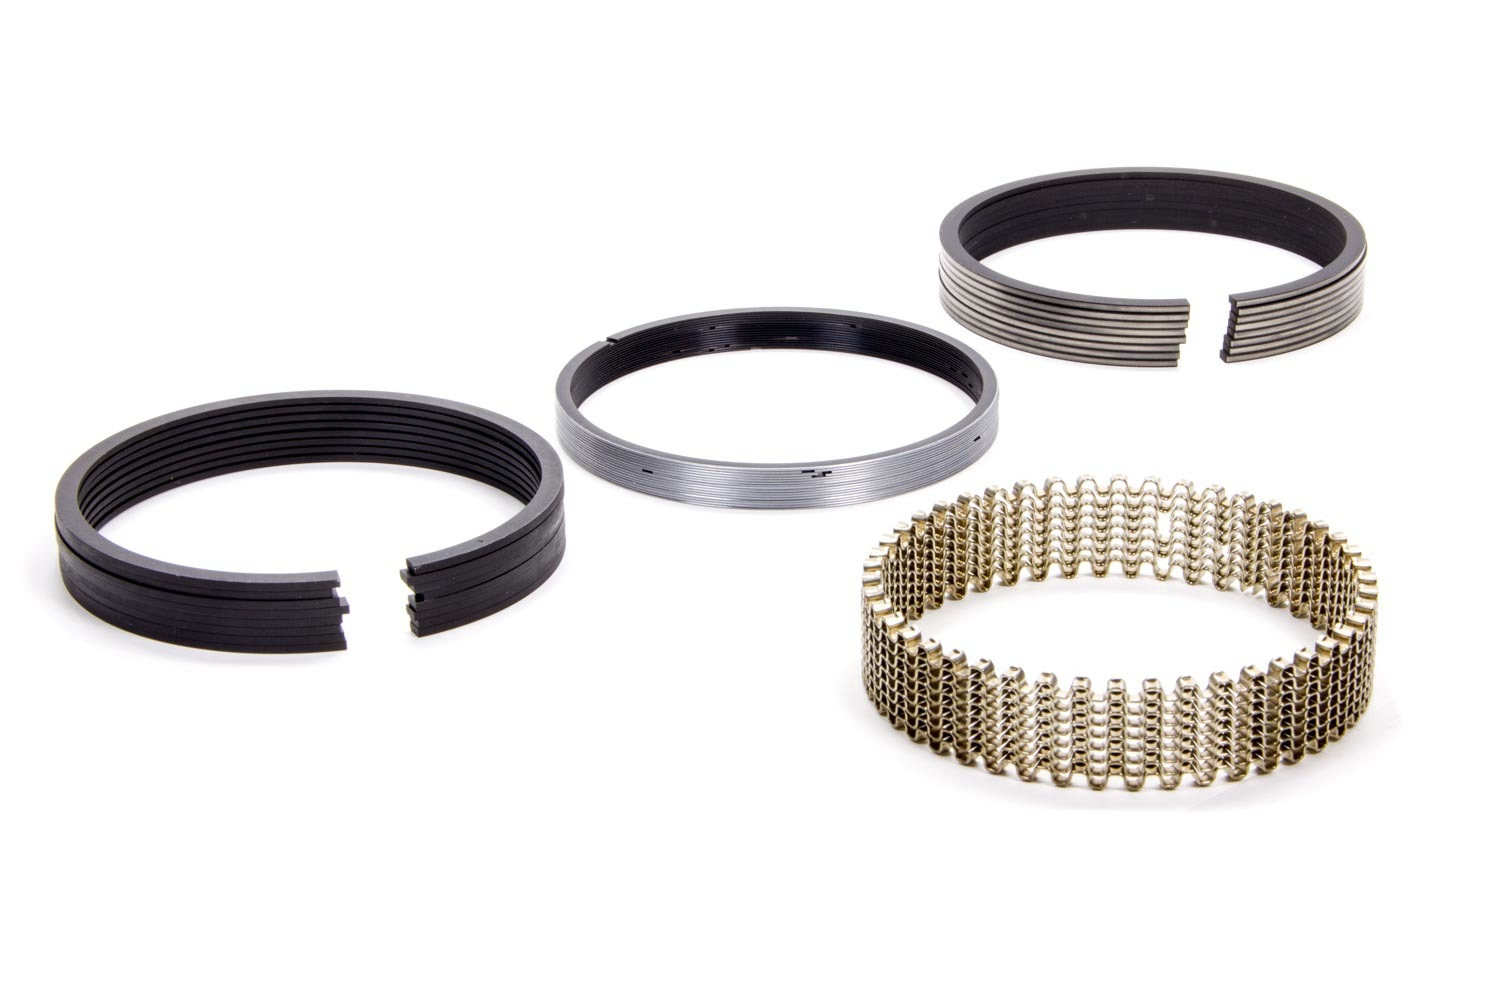 Hastings 2M139020 Piston Rings, 4.020 in Bore, 5/64 x 5/64 x 3/16 in Thick, Standard Tension, Moly, 8 Cylinder, Kit